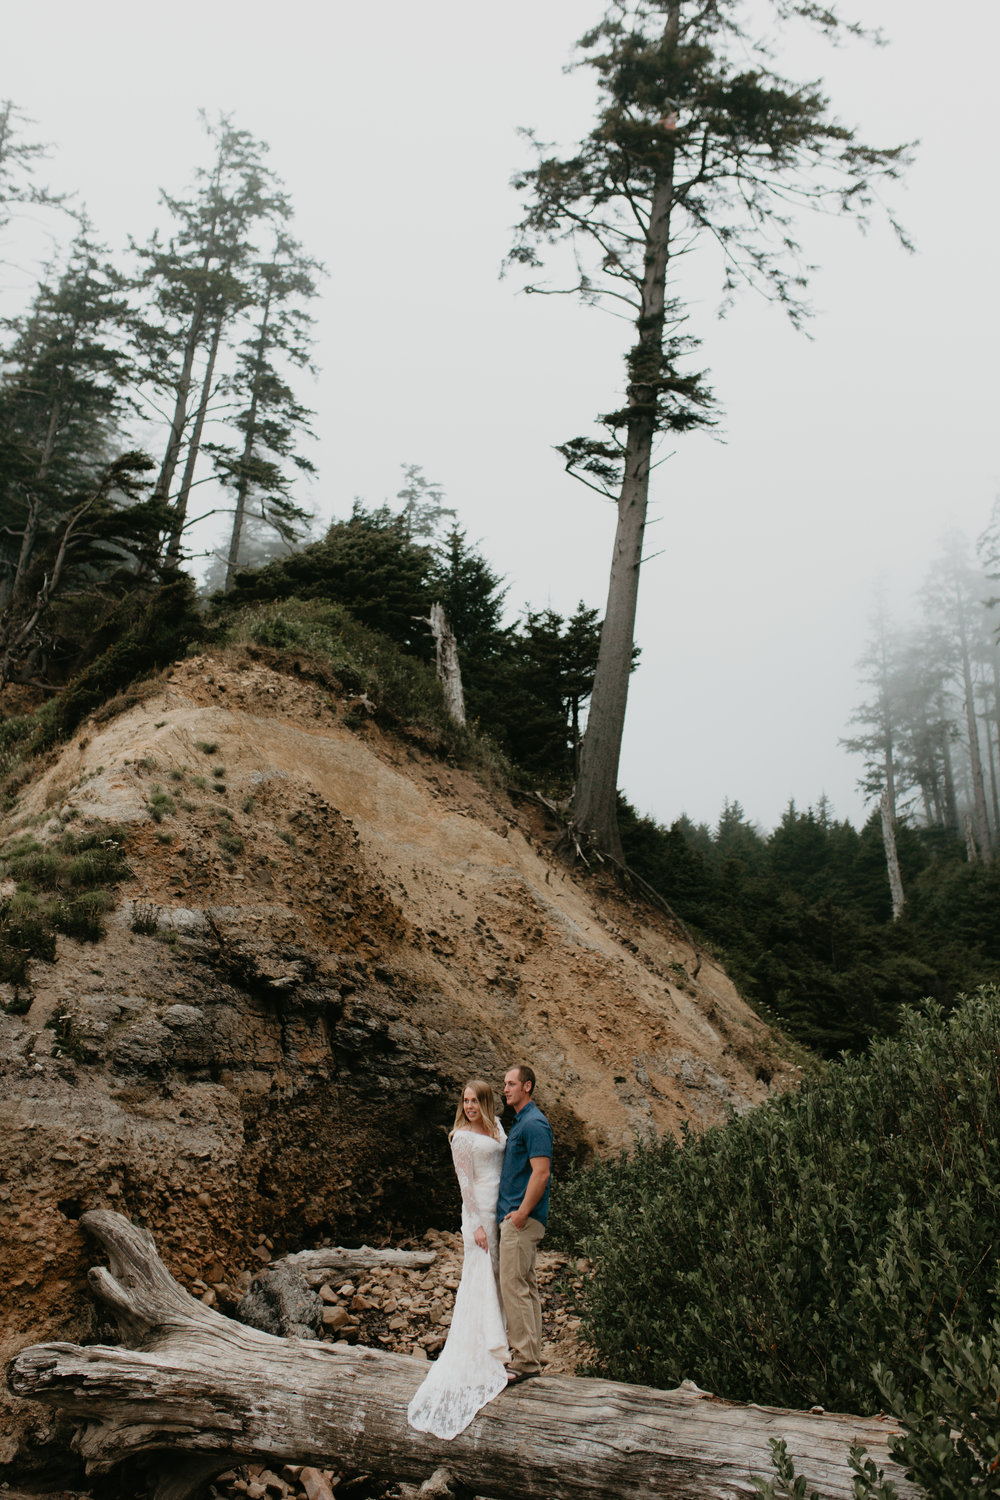 nicole-daacke-photography-ecola-state-park-oregon-elopement-bridal-photos-photographer-for-cannon-beach-elopement-oregon-coast-elopement-photographer-foggy-summer-elopement-cannon-beach-best-adventure-elopement-photographer-6940.jpg